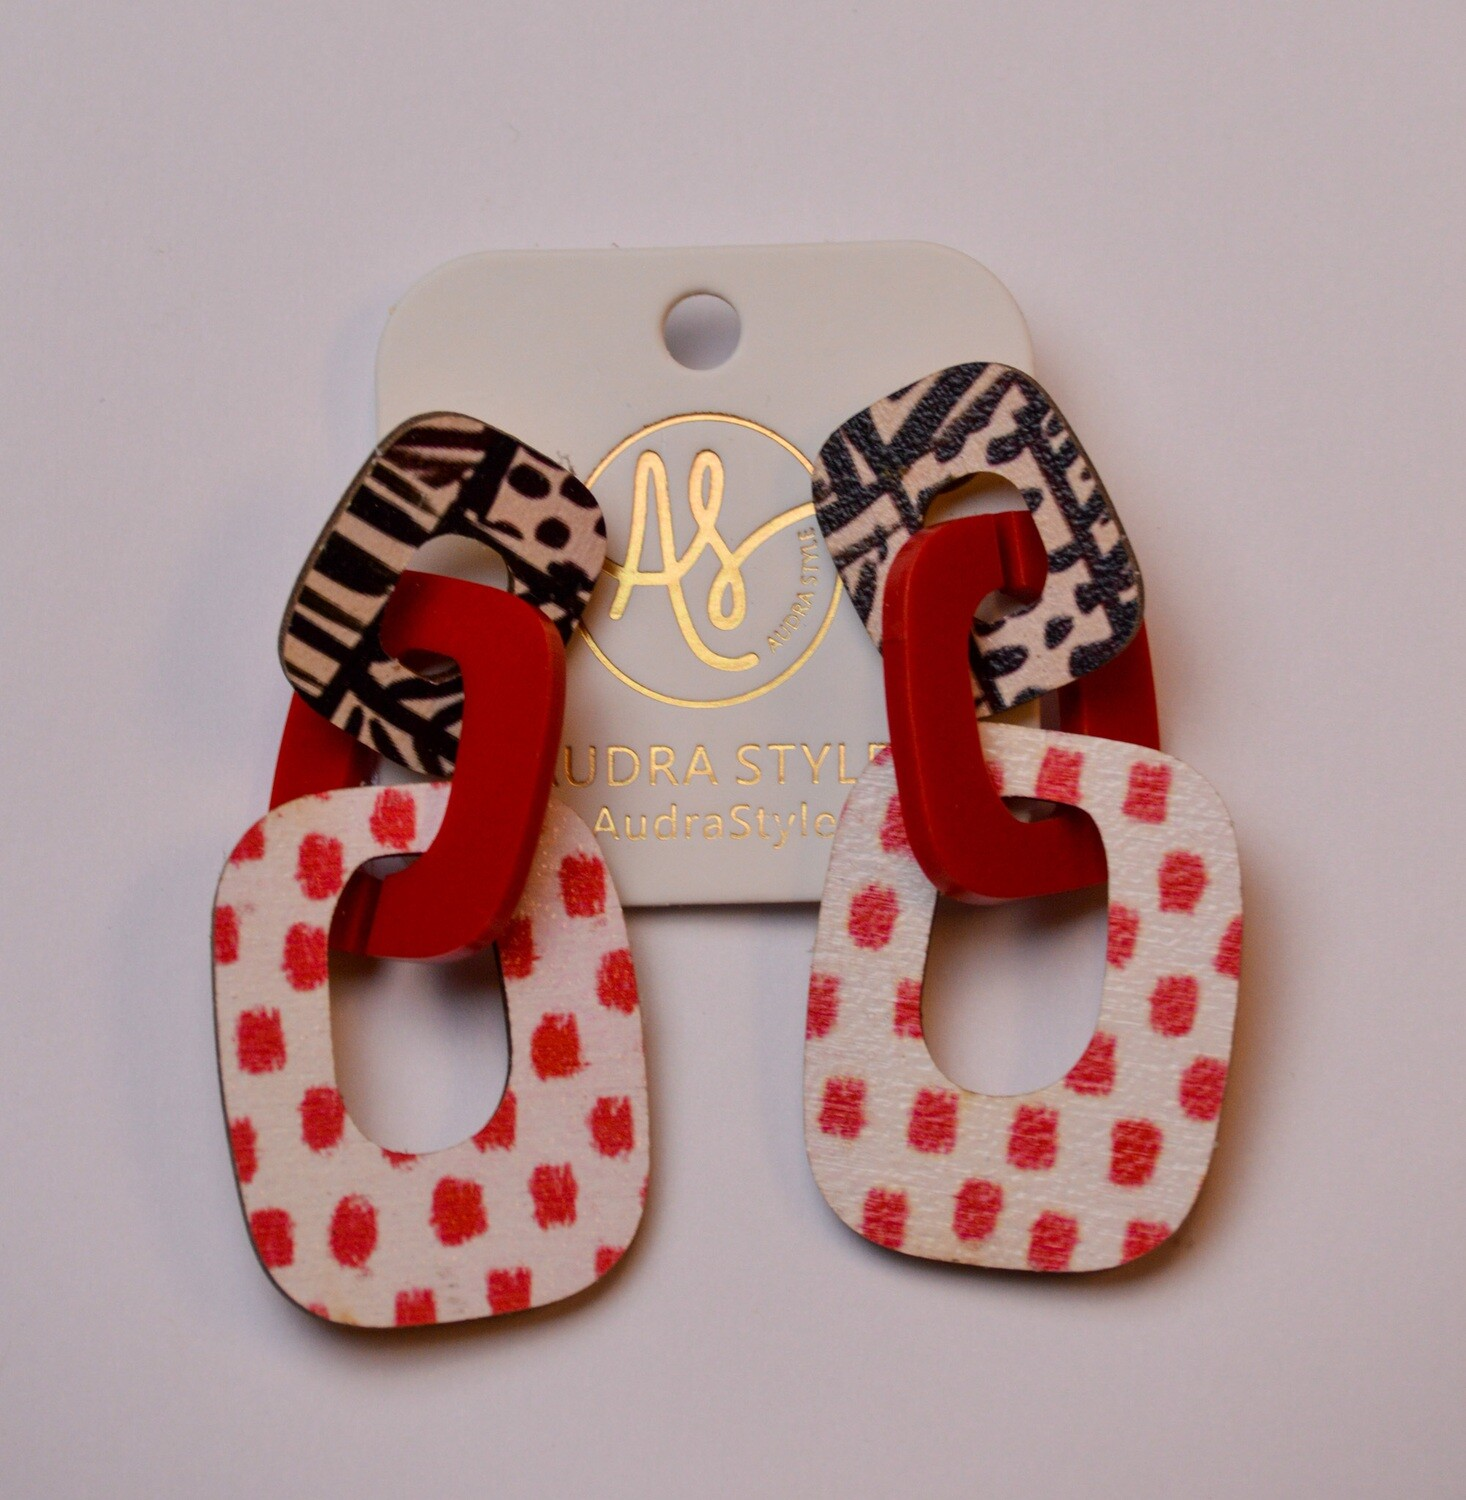 Audra Style Lola Black Abstract Red Dot